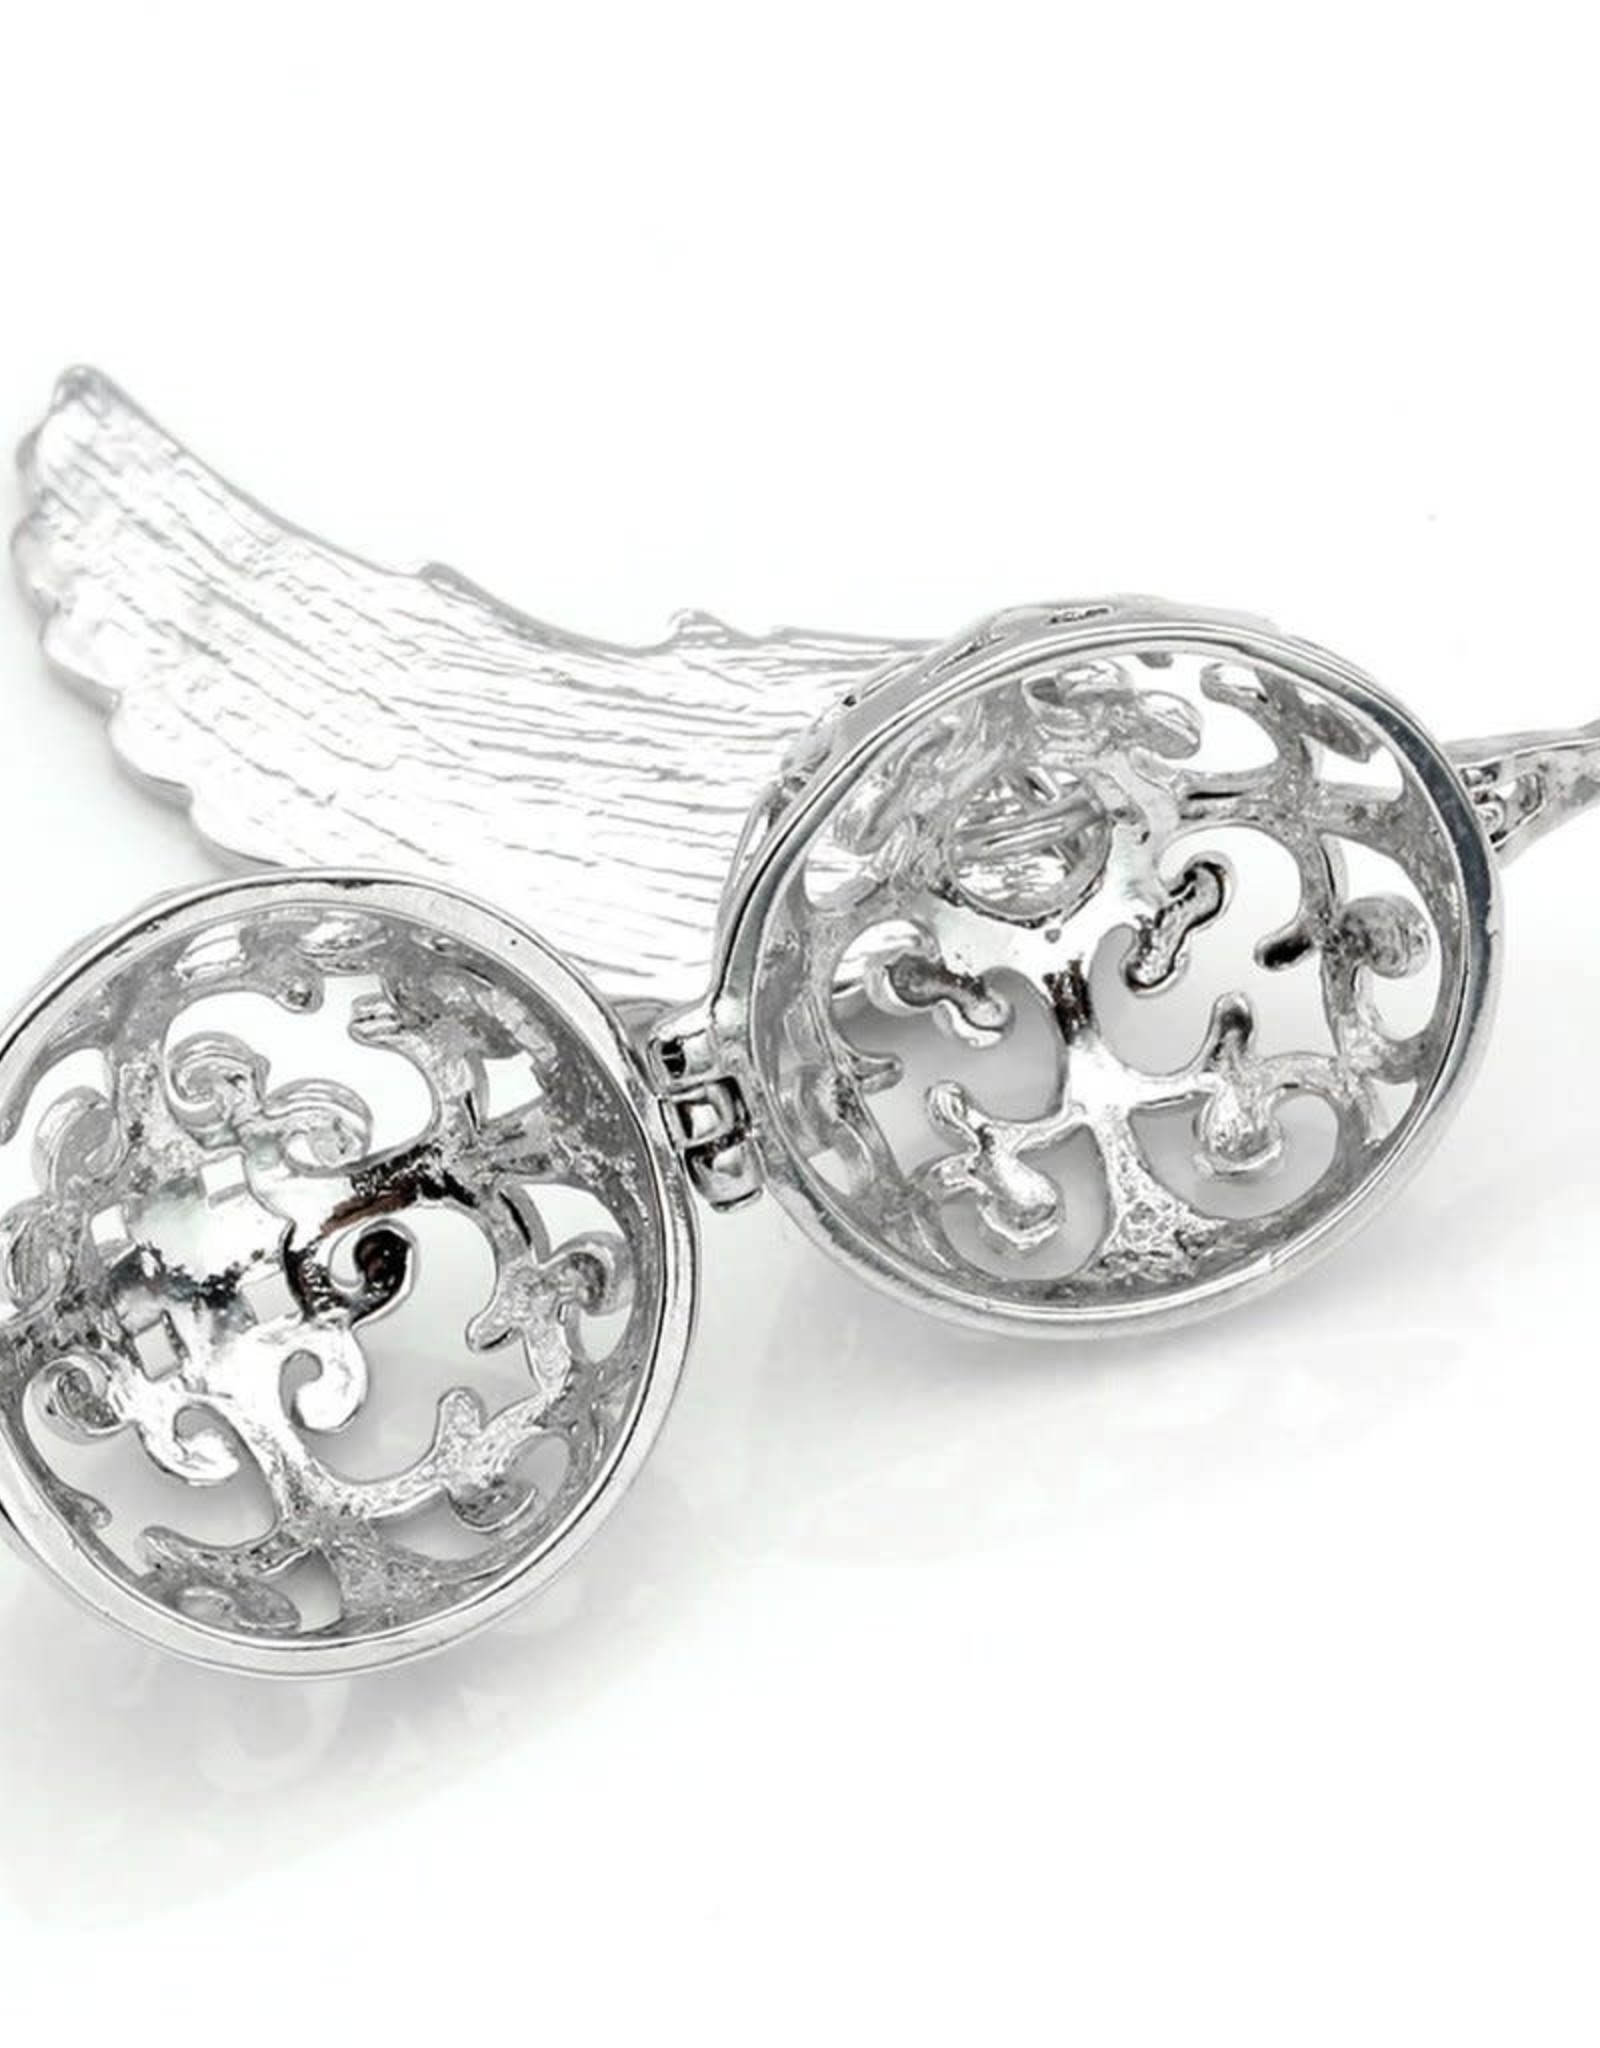 Aromatherapy Diffuser Necklace - Angel Wing with Cage